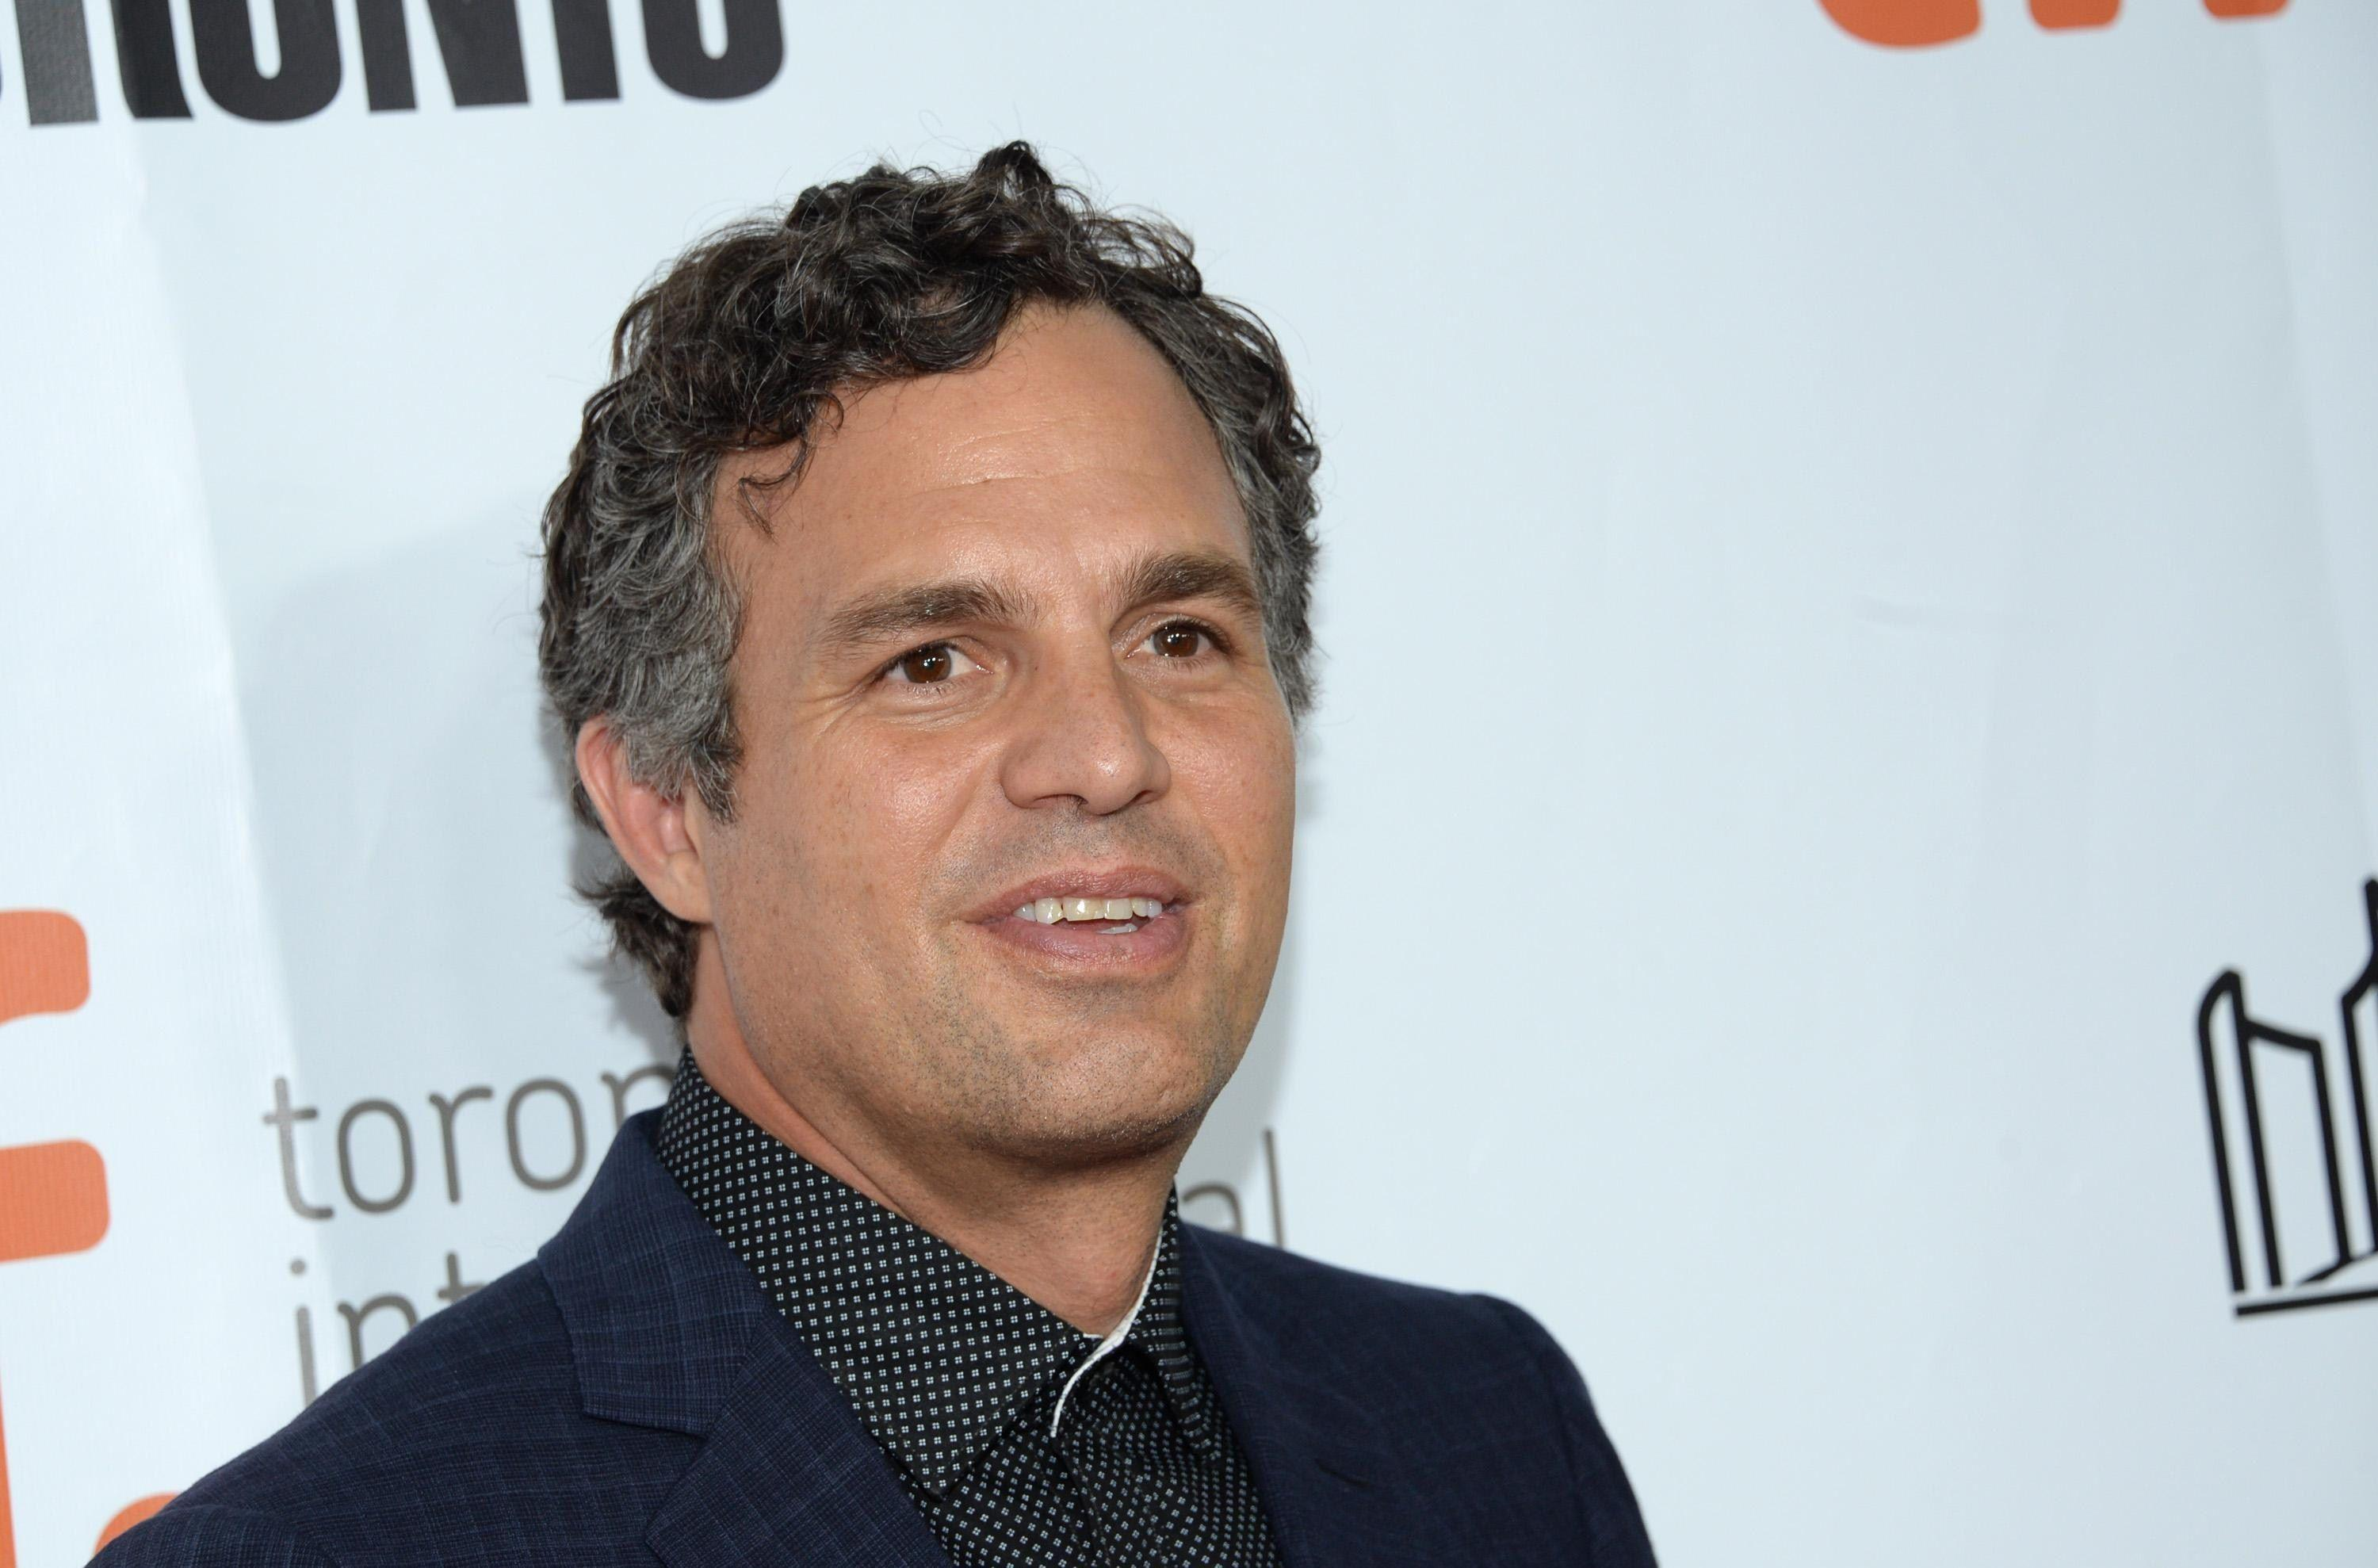 Mark Ruffalo cute hd wallpapers